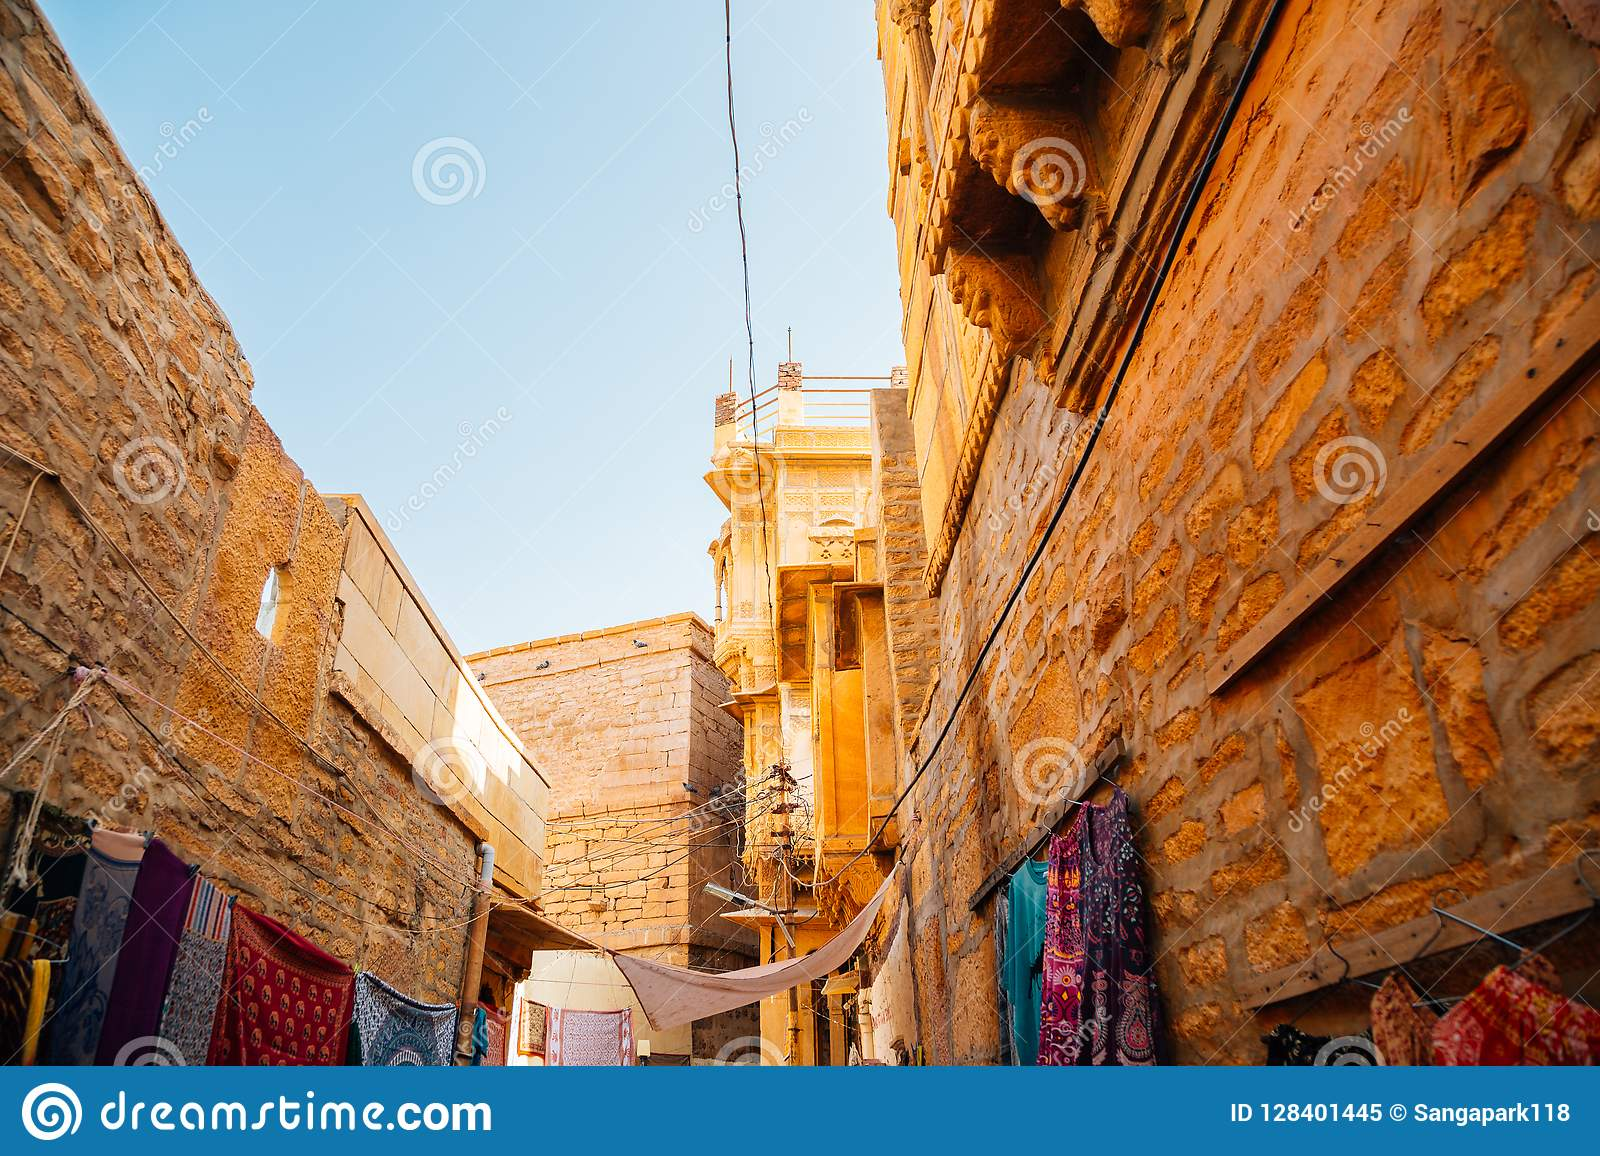 Street market and old buildings at Jaisalmer fort in India